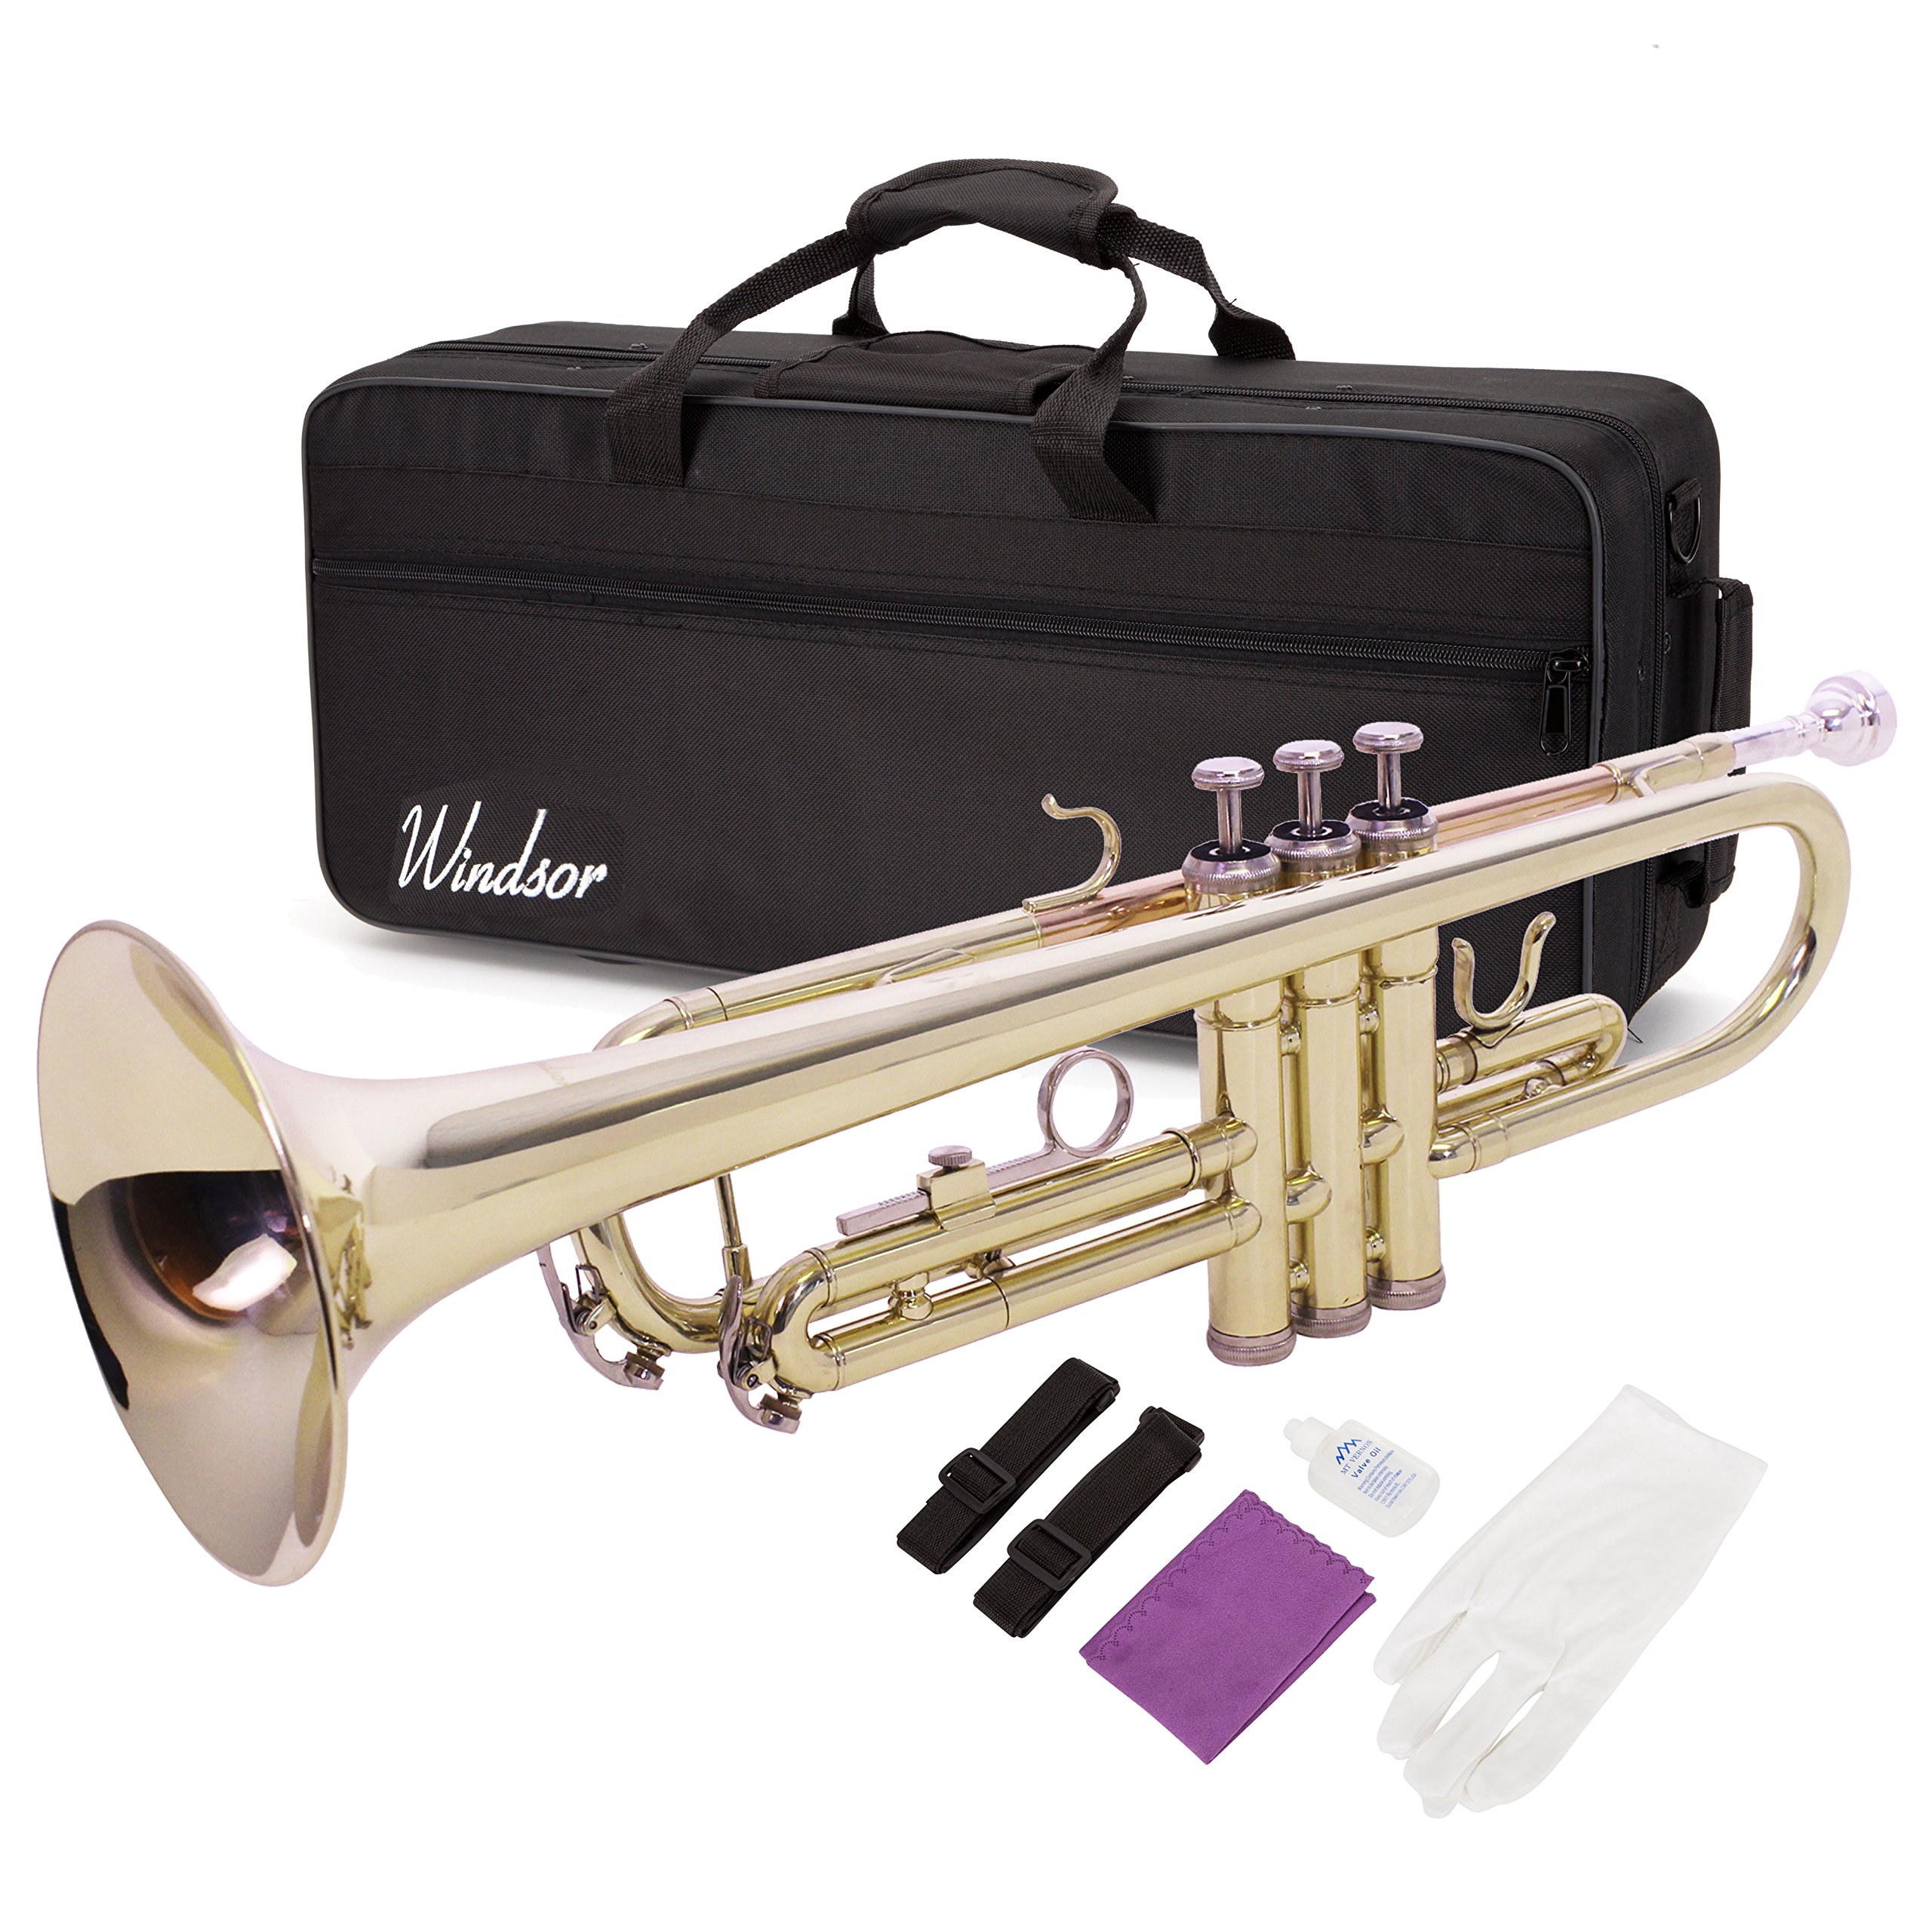 Windsor Student Bb Trumpet Outfit Including Case (MI-1001)